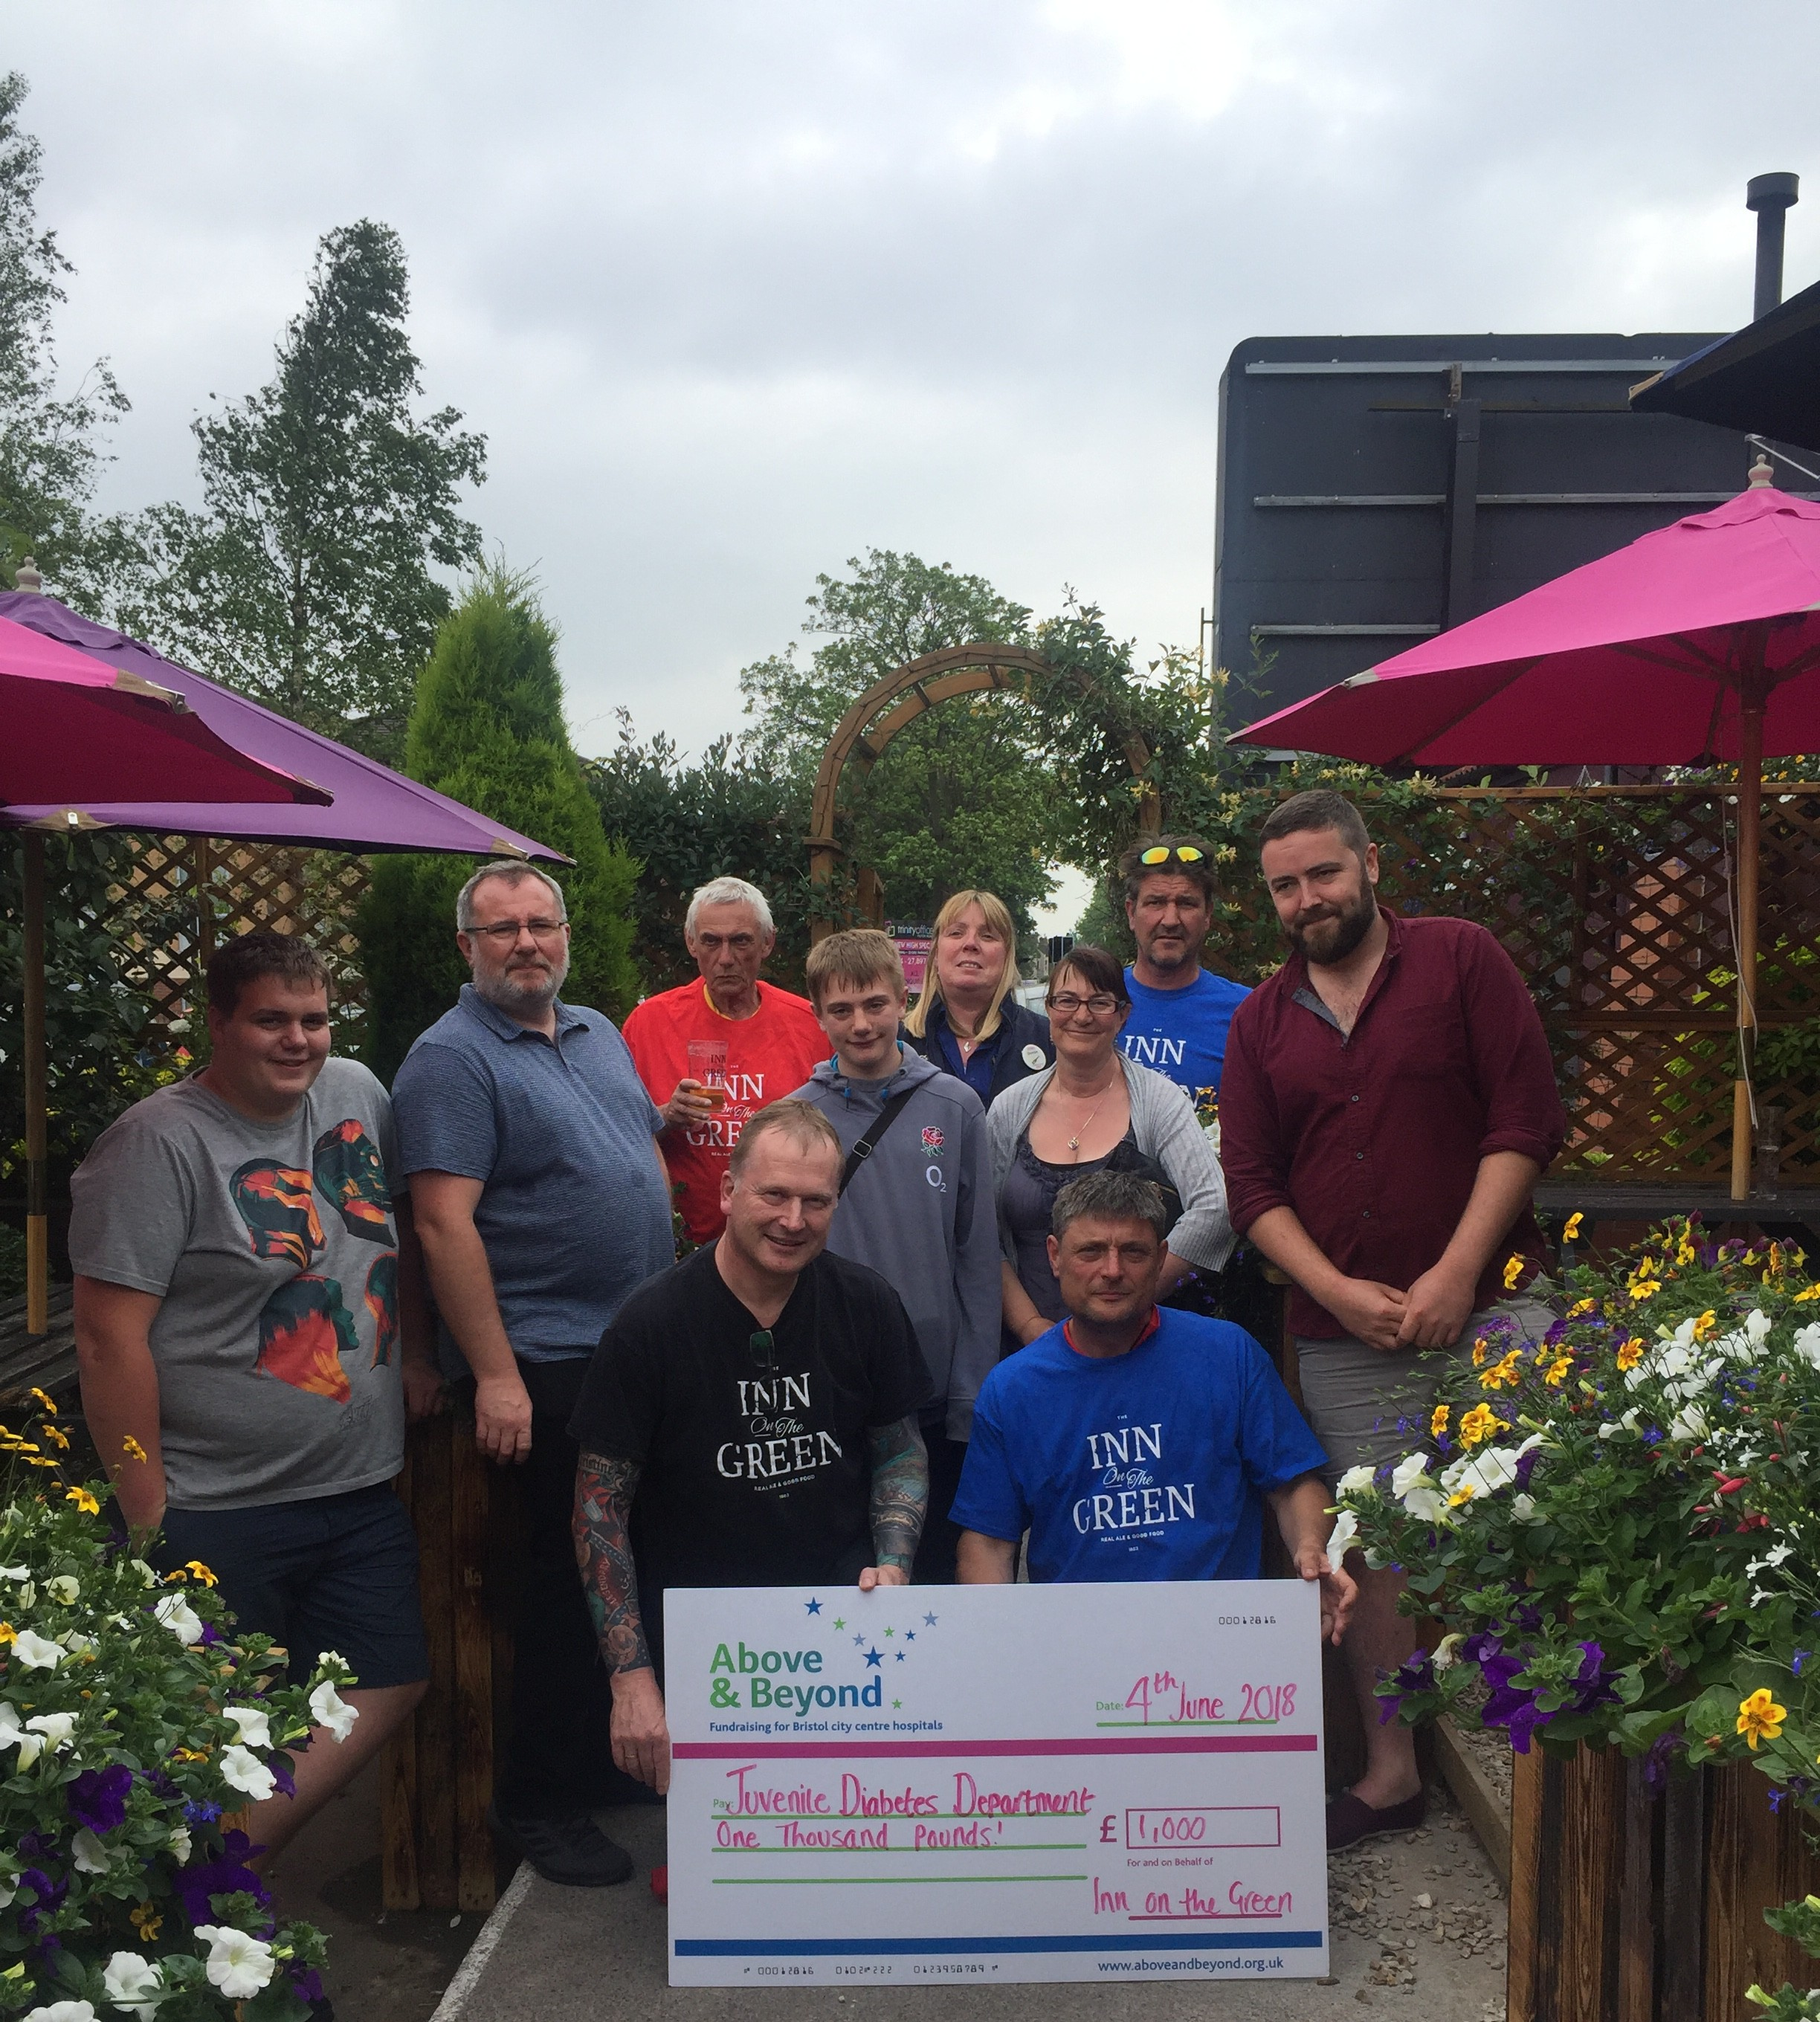 Pub's £1,000 to fight juvenile diabetes